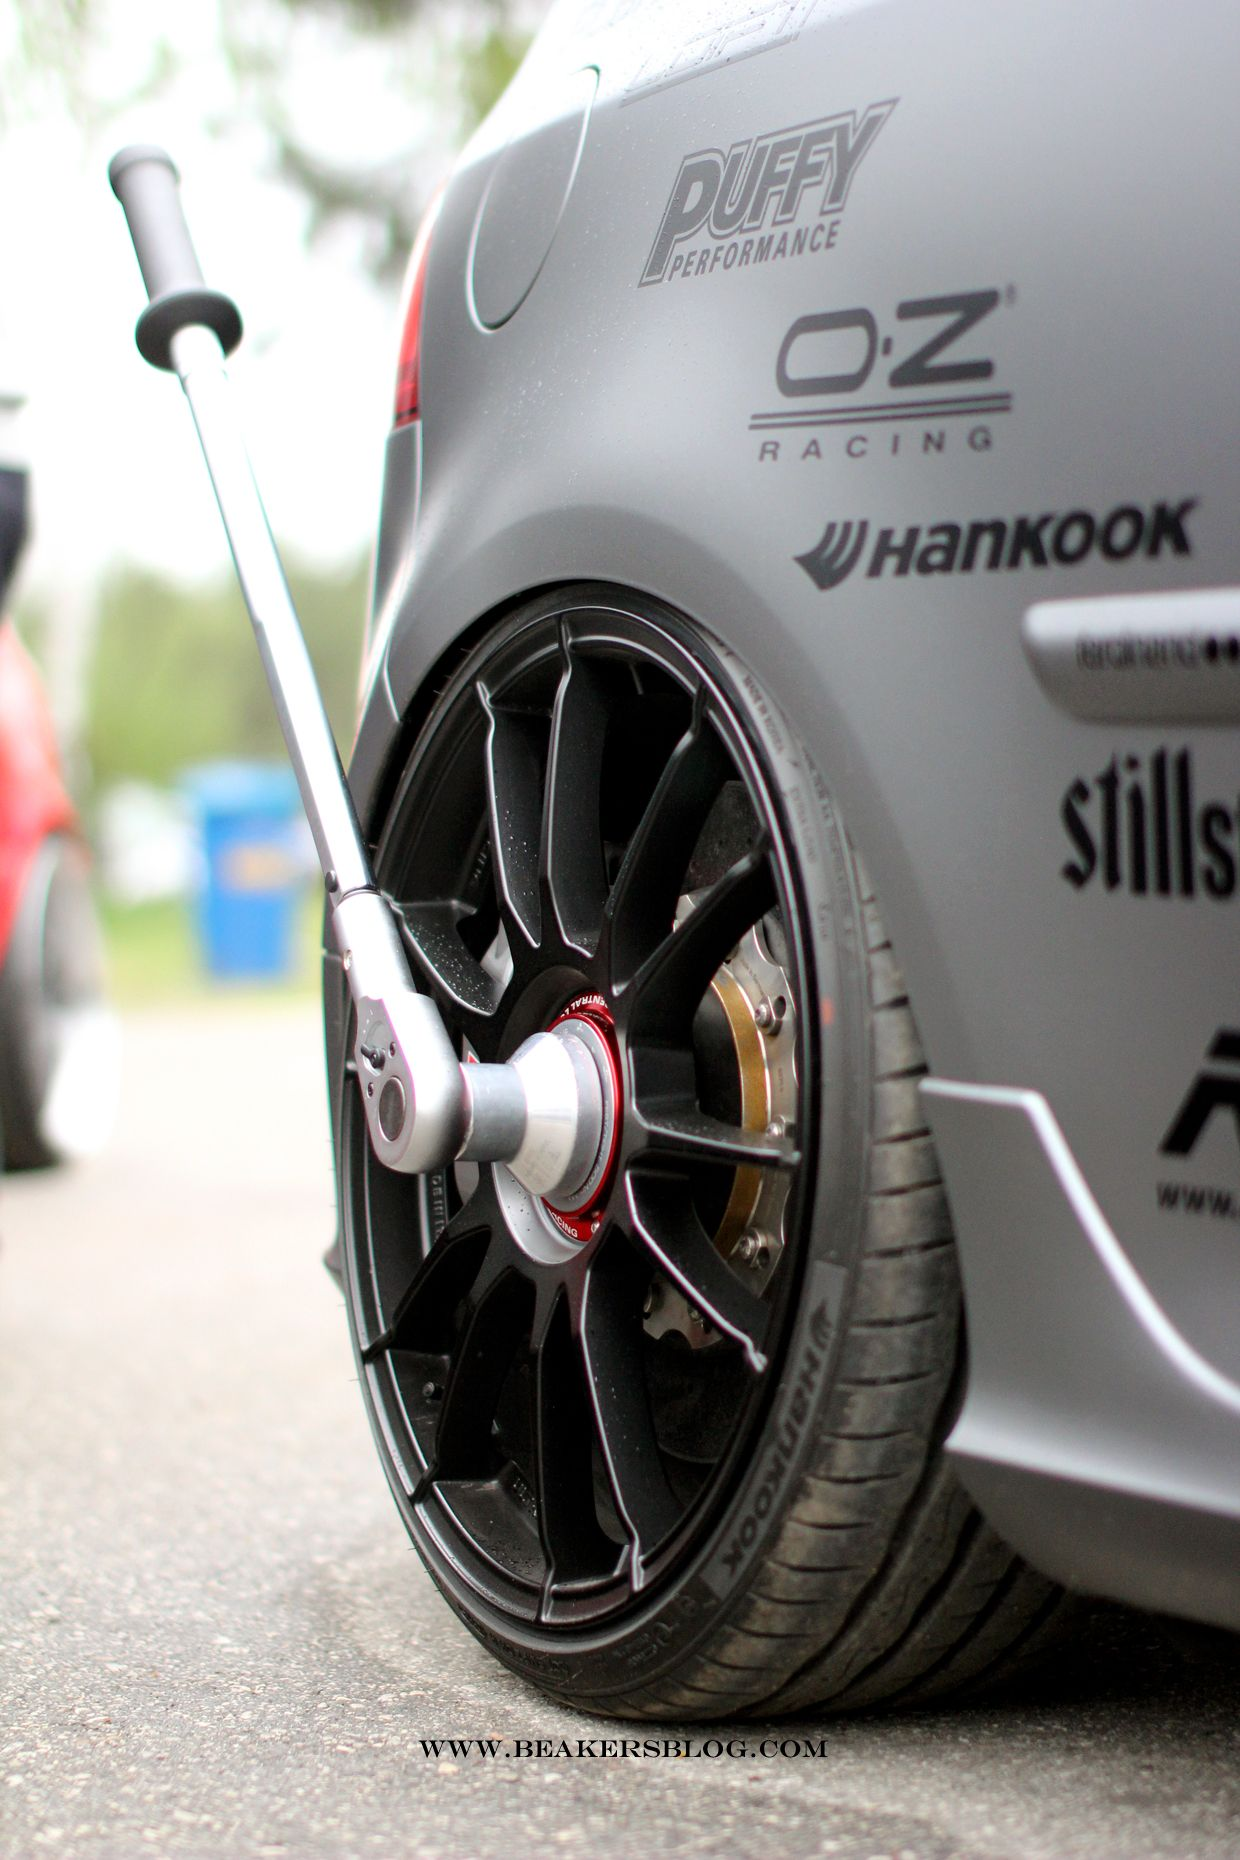 Golf Hankook Tire Oz Racing Rodas Automotivas Acessorios Para